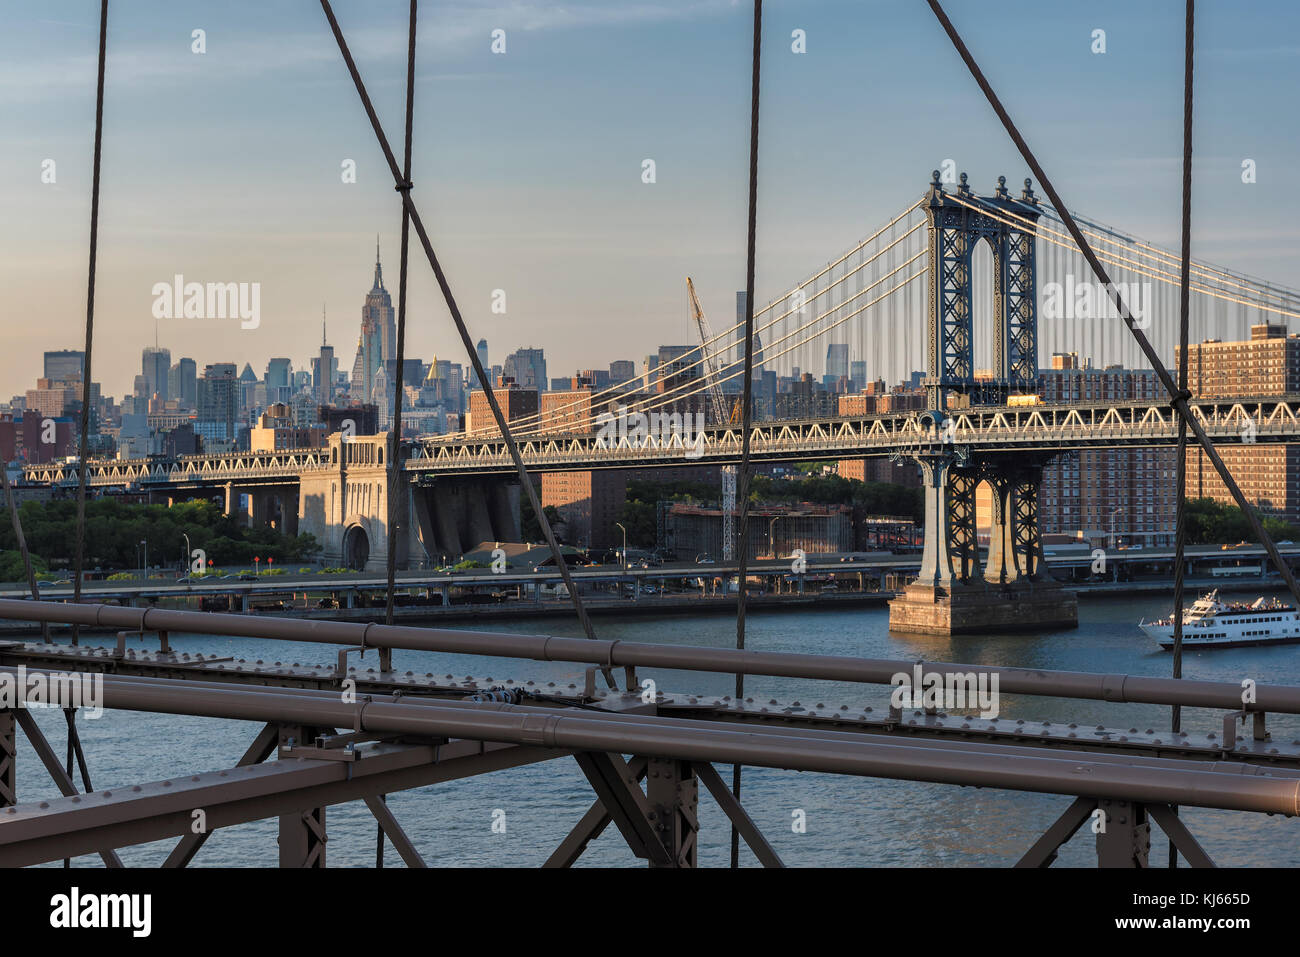 New York City skyline with Manhattan Bridge Stock Photo